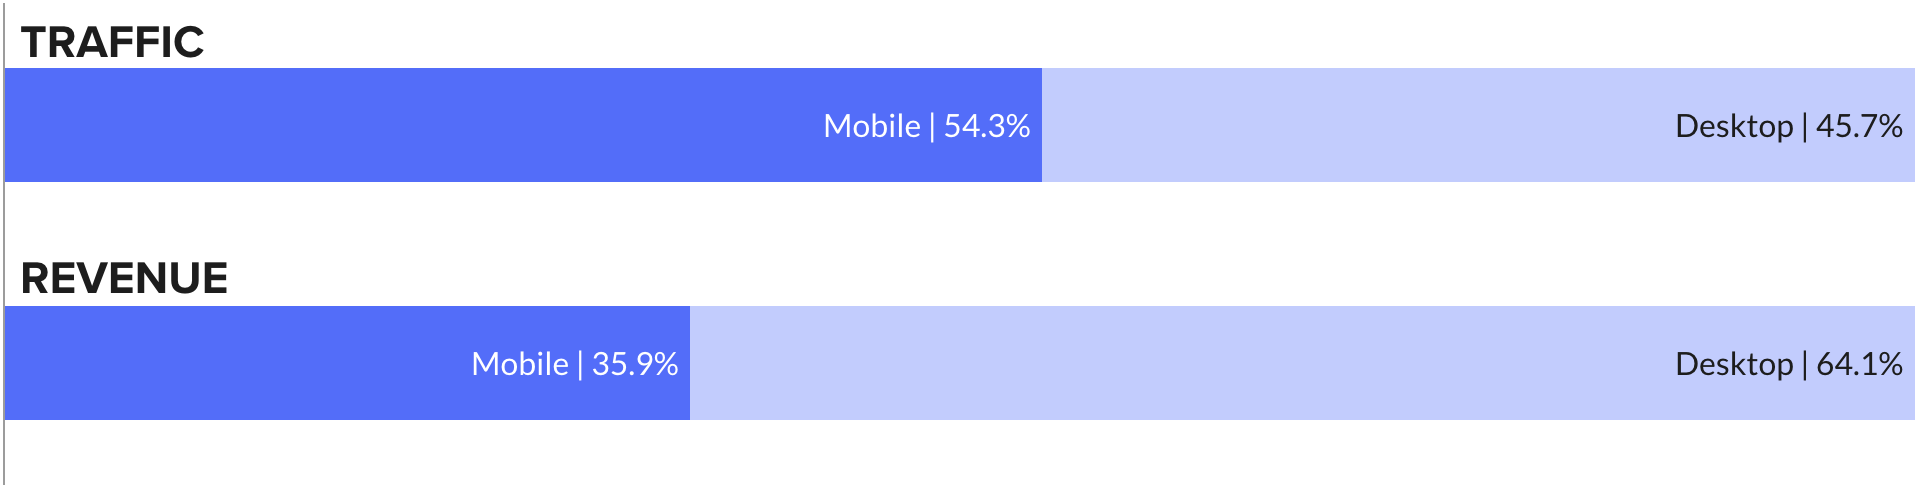 BFCM 2018 Traffic/Revenue by Device